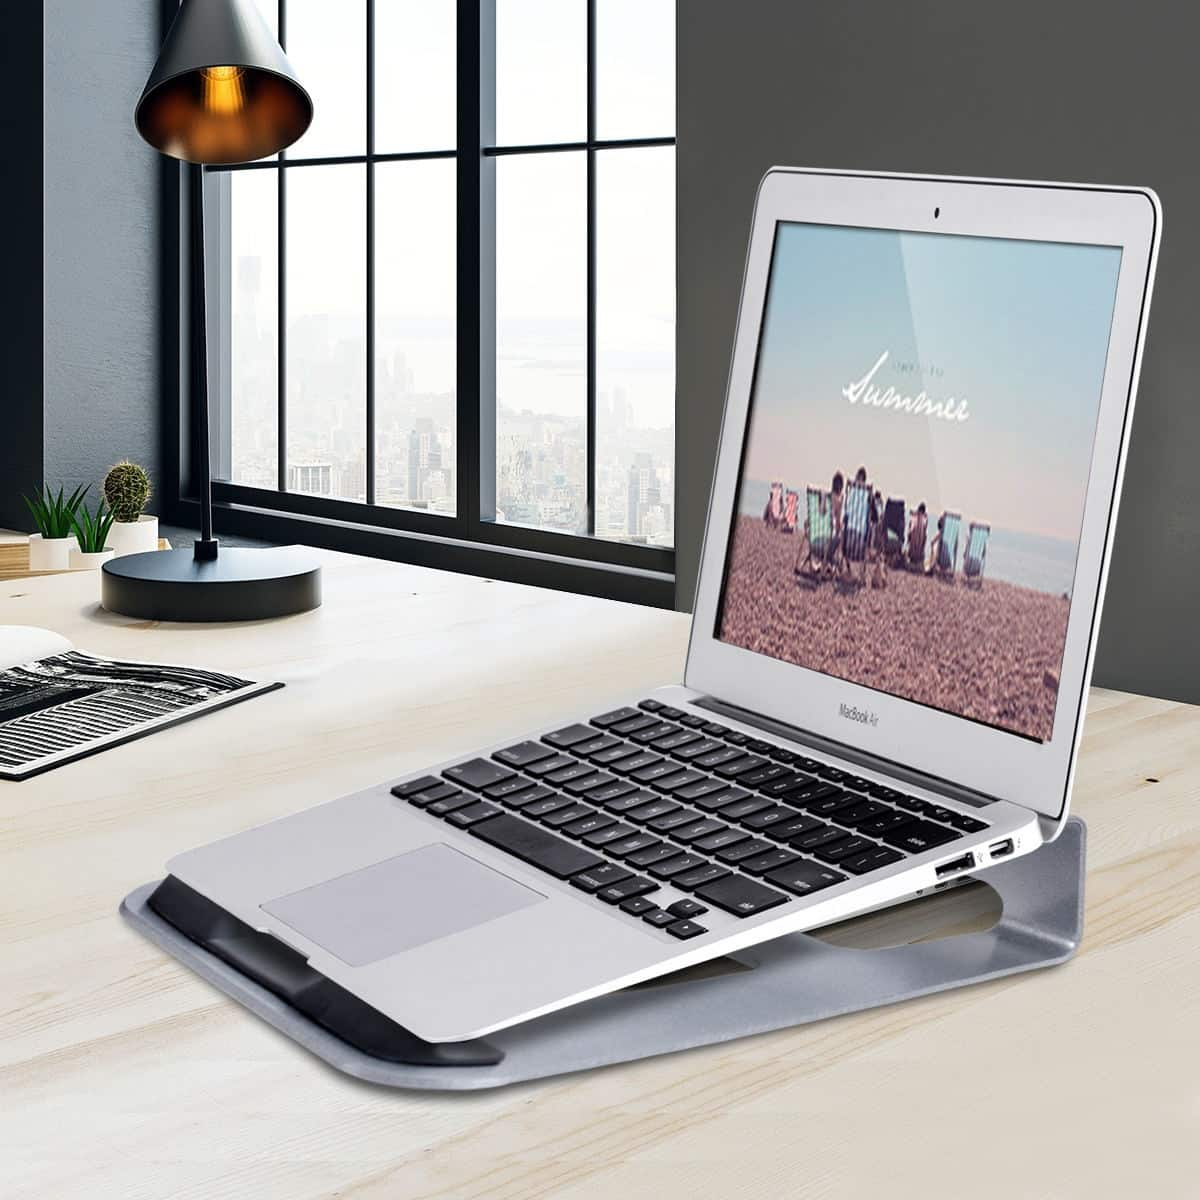 "Costway Lightweight Aluminum Desk Holder 11""~15.5"" Laptop Stand - $4.95 + Free Shipping"